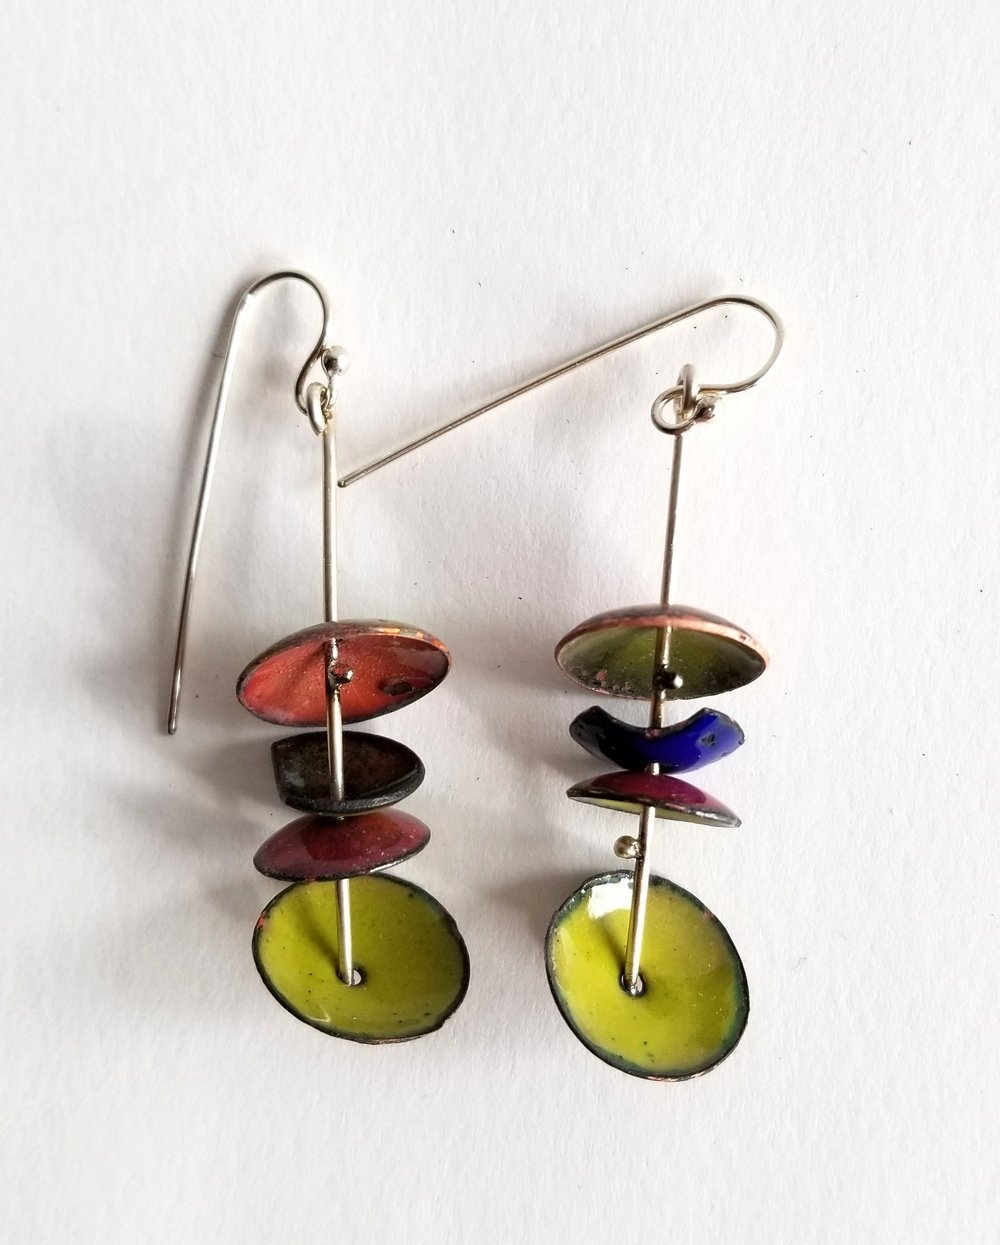 Shing Hsieh, Colors of Nature Earrings, at Waltham Open Studios 2020